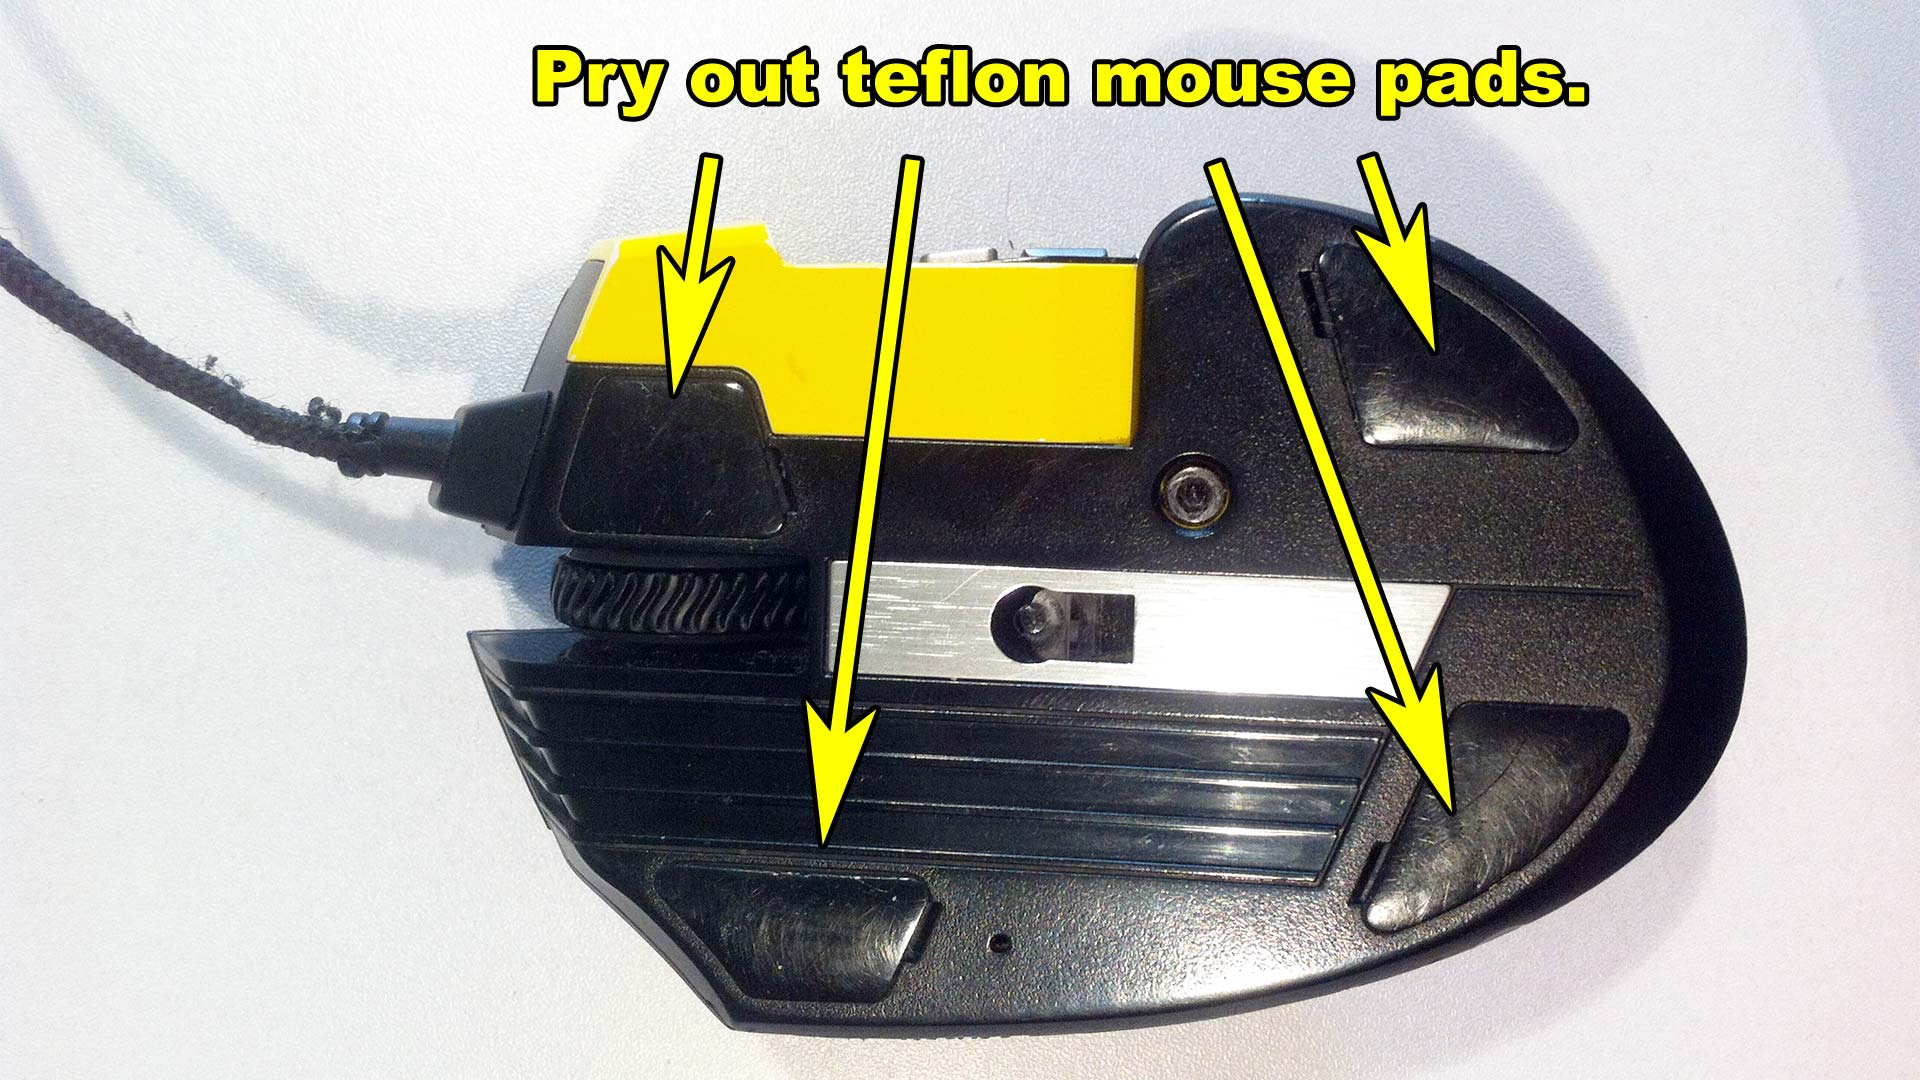 Corsair Scimitar Mouse Disassembly - Remove teflon mouse pads.